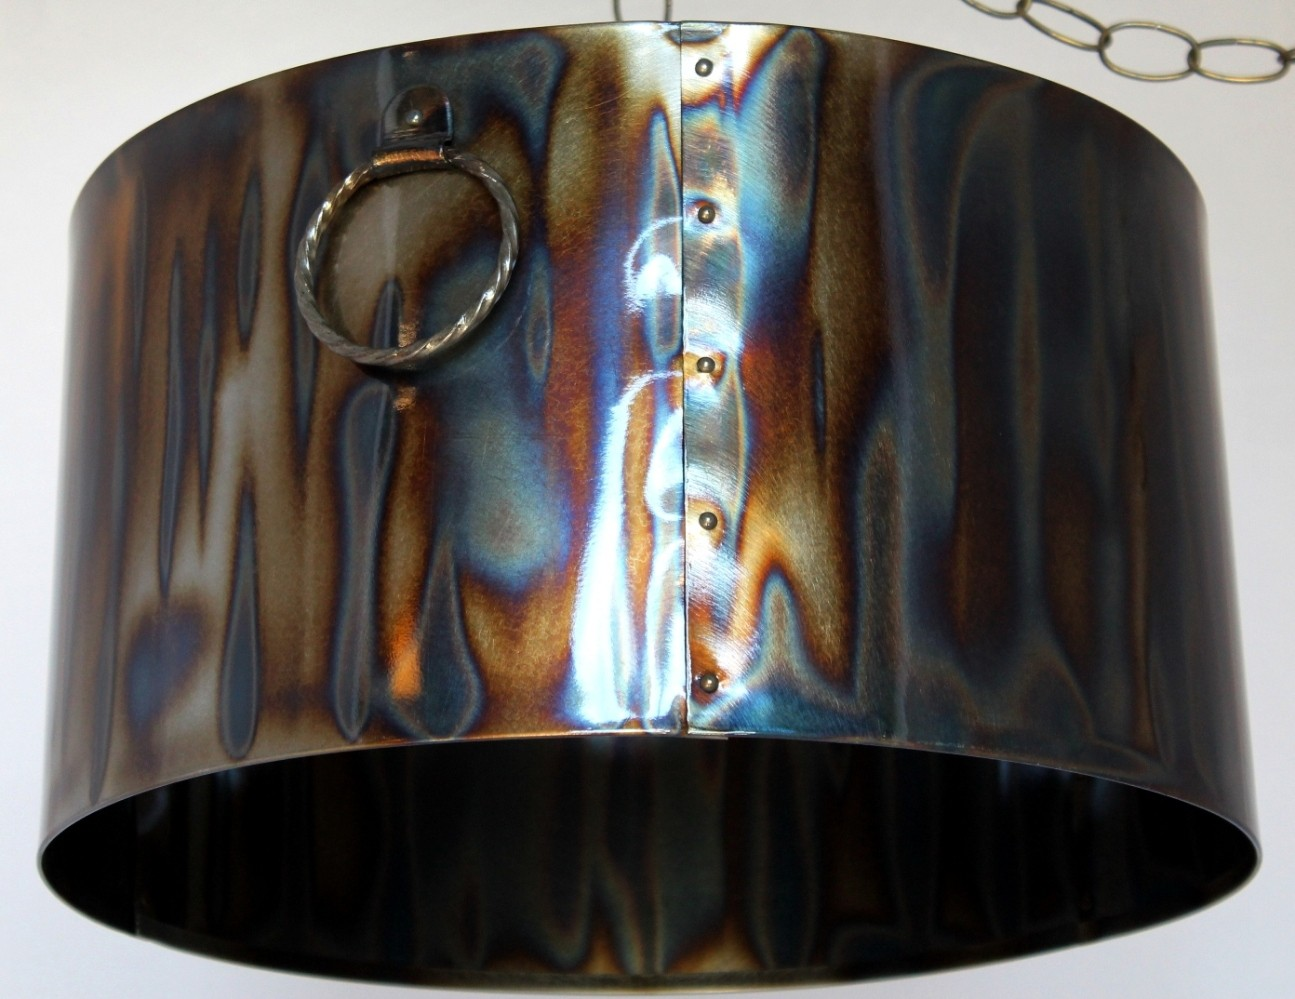 Torched metal lampshade